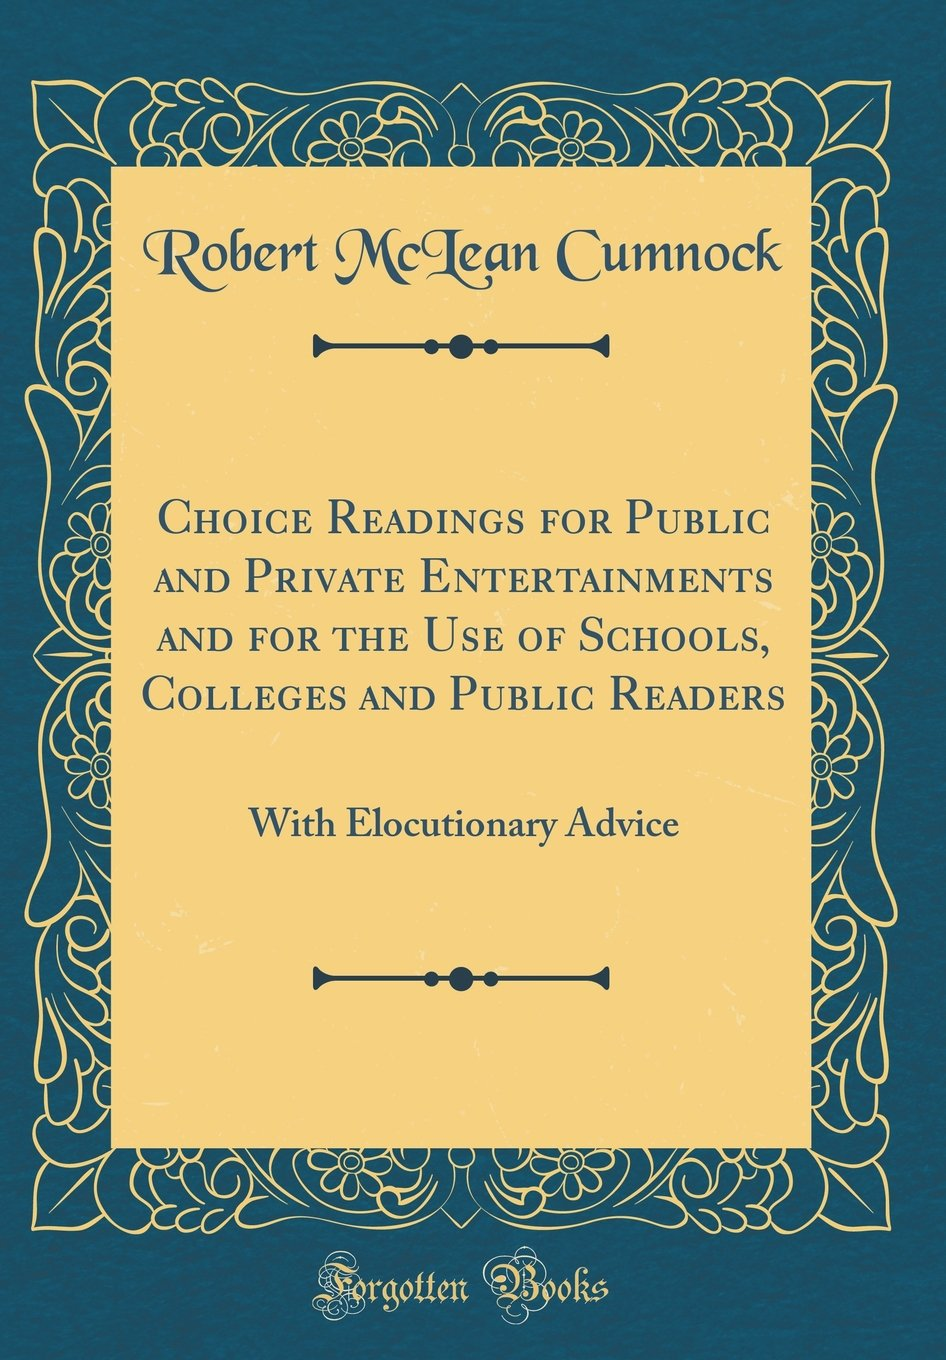 Download Choice Readings for Public and Private Entertainments and for the Use of Schools, Colleges and Public Readers: With Elocutionary Advice (Classic Reprint) ebook